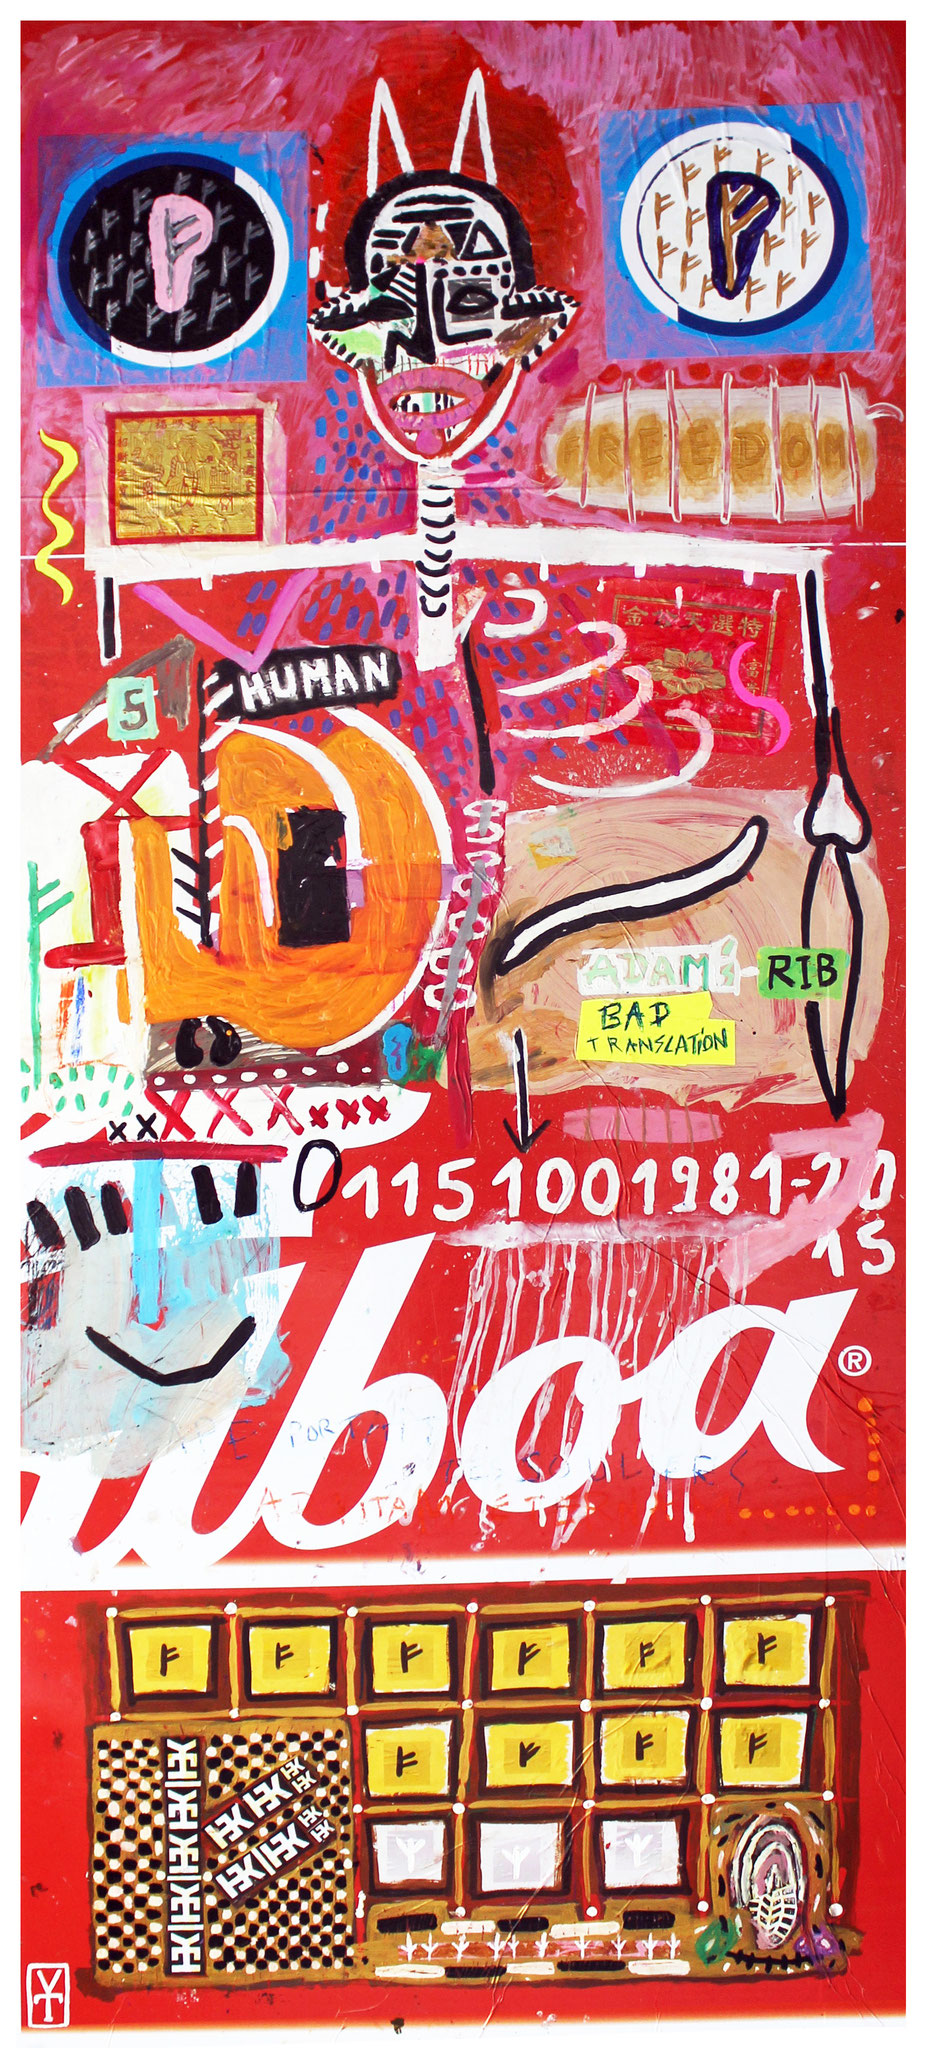 HUMAN/ Acrylic, collage and oil pastel on plastic - 35x101 inches/ 2015